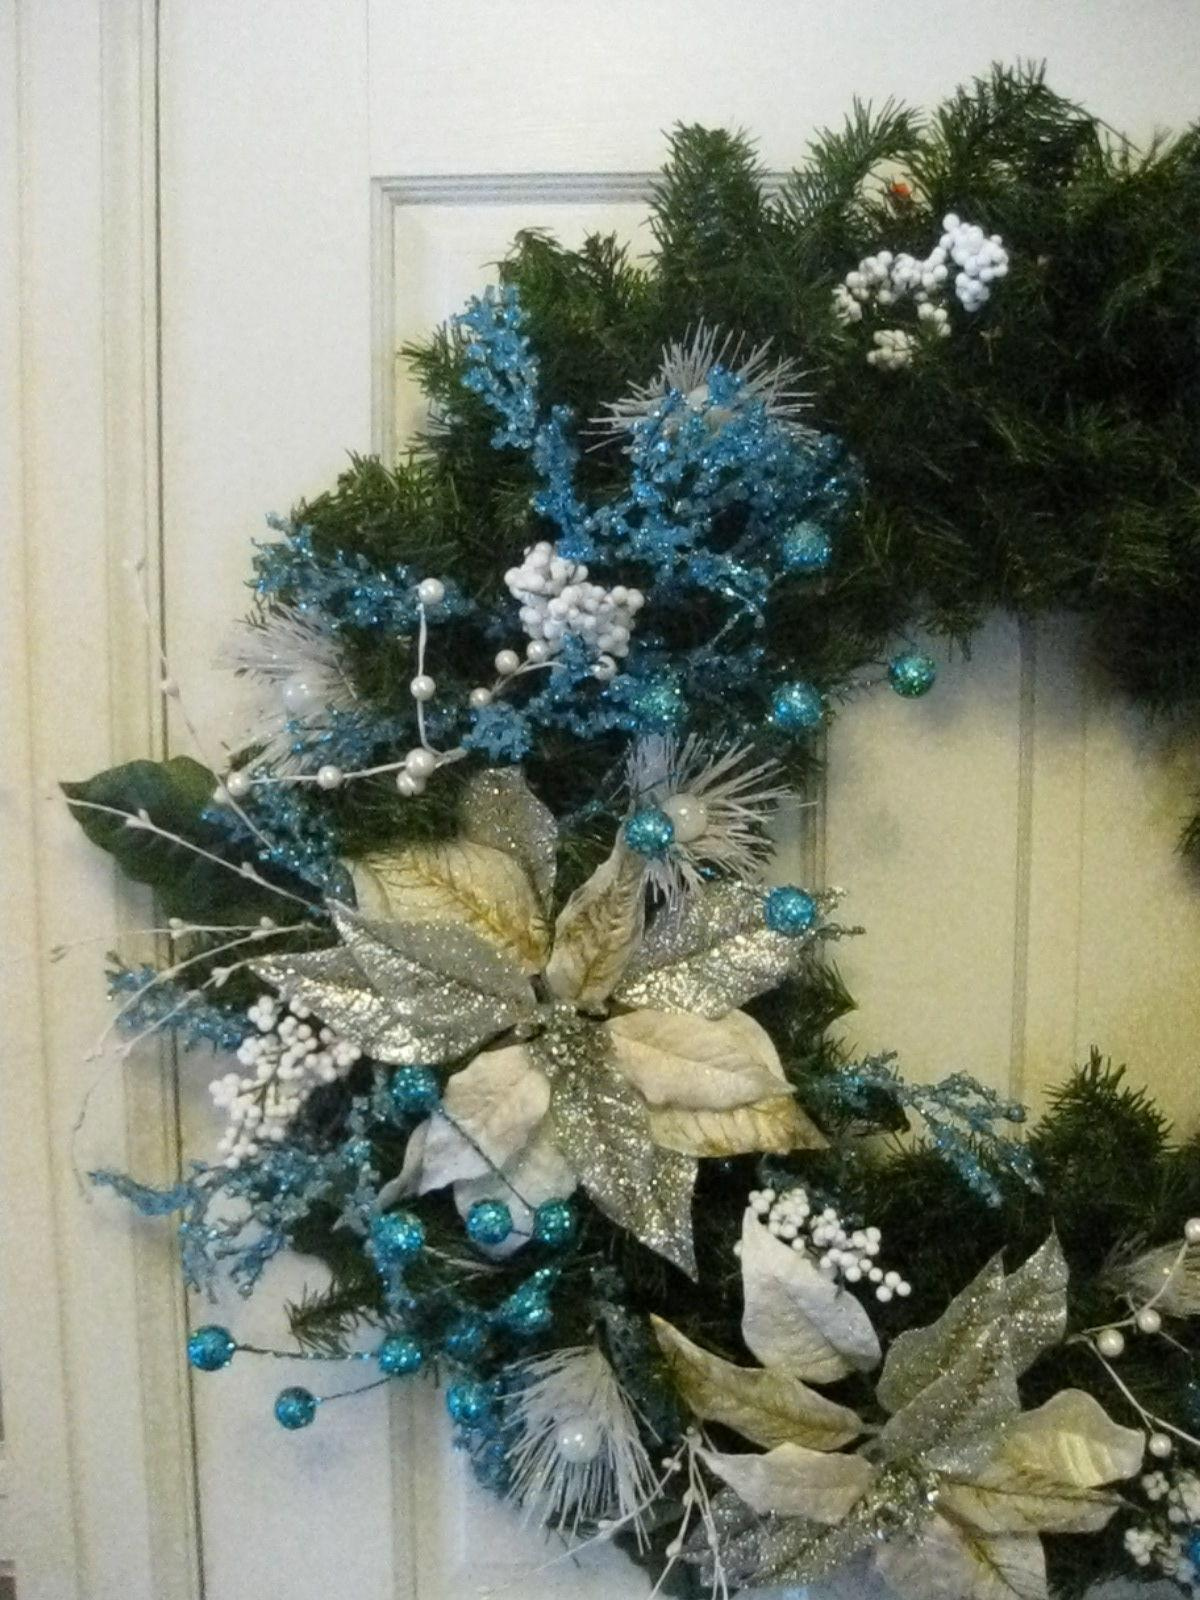 Last minute decorating tips from Frederick s own Mr